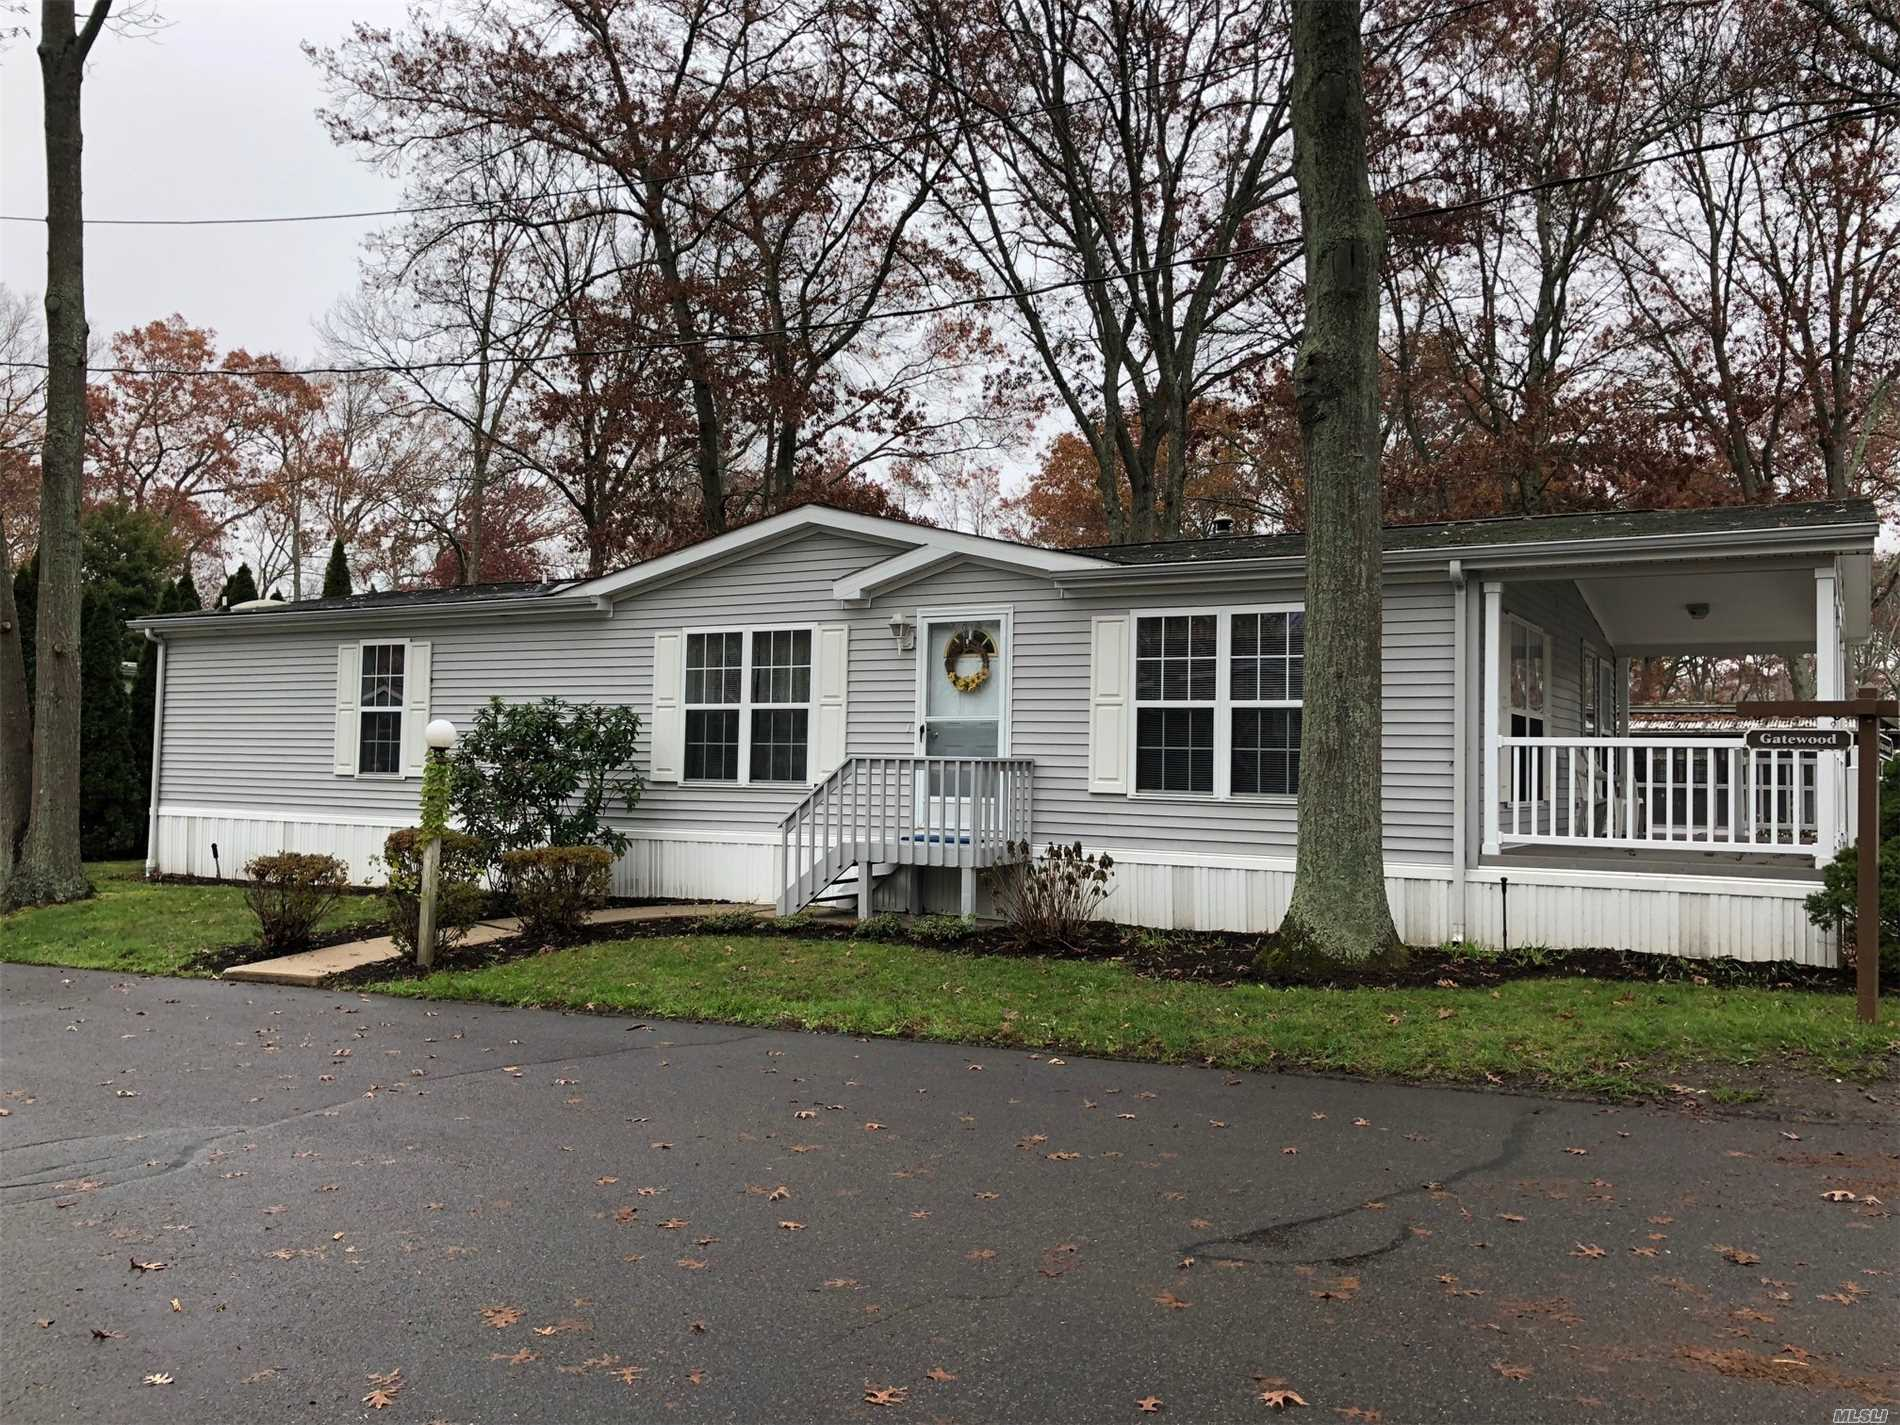 Spacious 2 Bedroom 2 Bath Home With Handicap Ramp - Large Front Porch And Deck Area - 2 Car Driveway And A Short Walk To Clubhouse And Park Area.